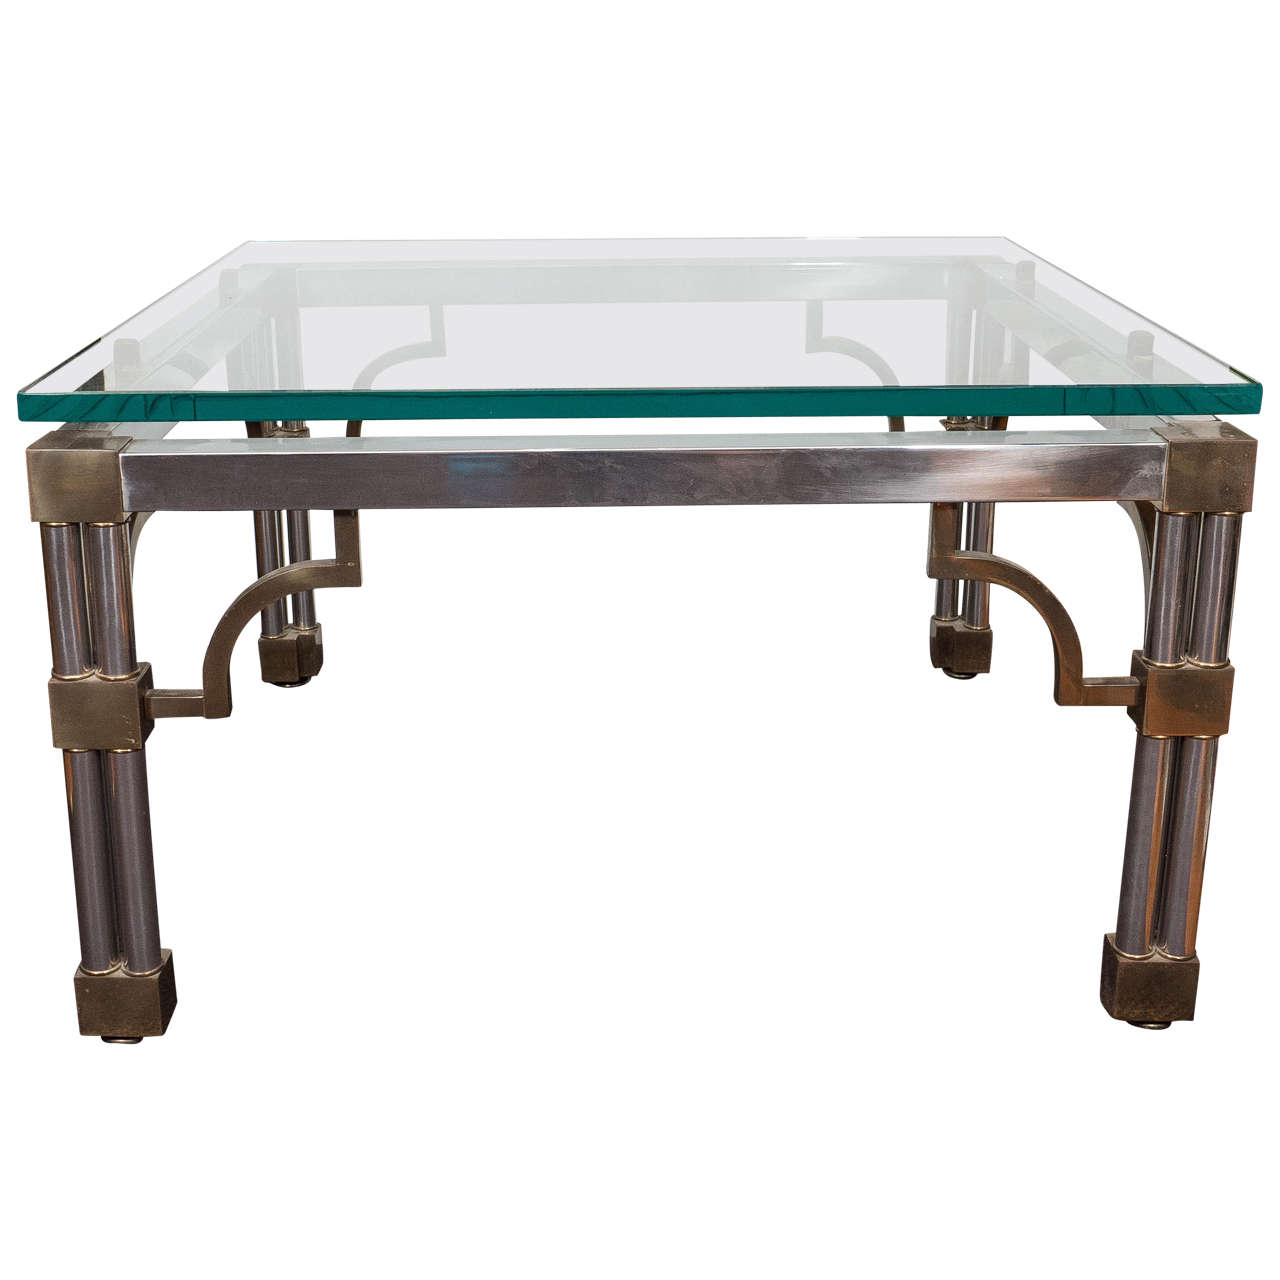 Asian Inspired Glass Top Chrome Coffee Table With Brass